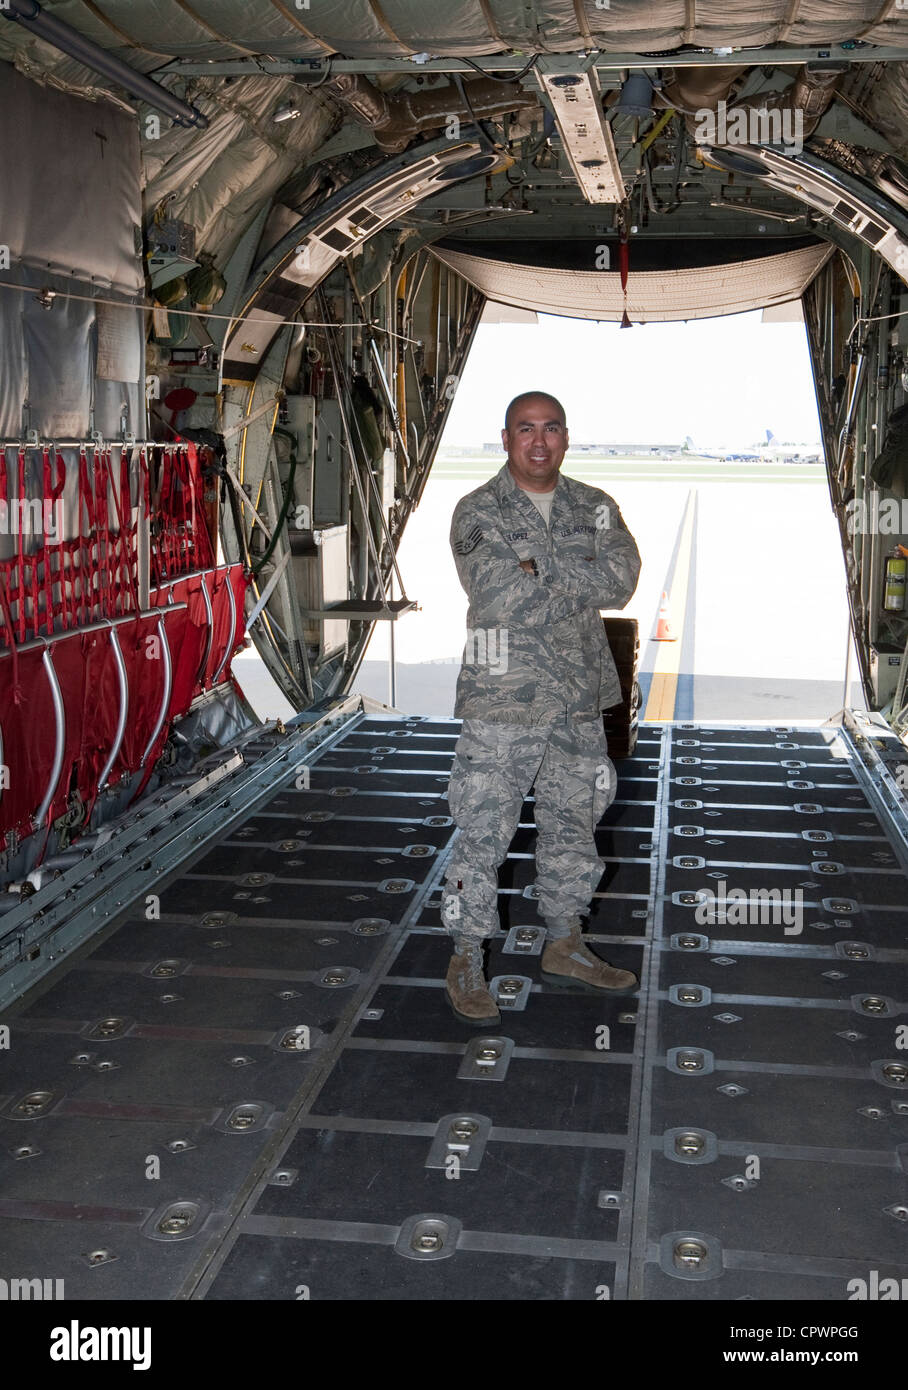 Sargent Robert Lopez , member of the Texas Air National Guard in empty C130 cargo aircraft during training exercise - Stock Image